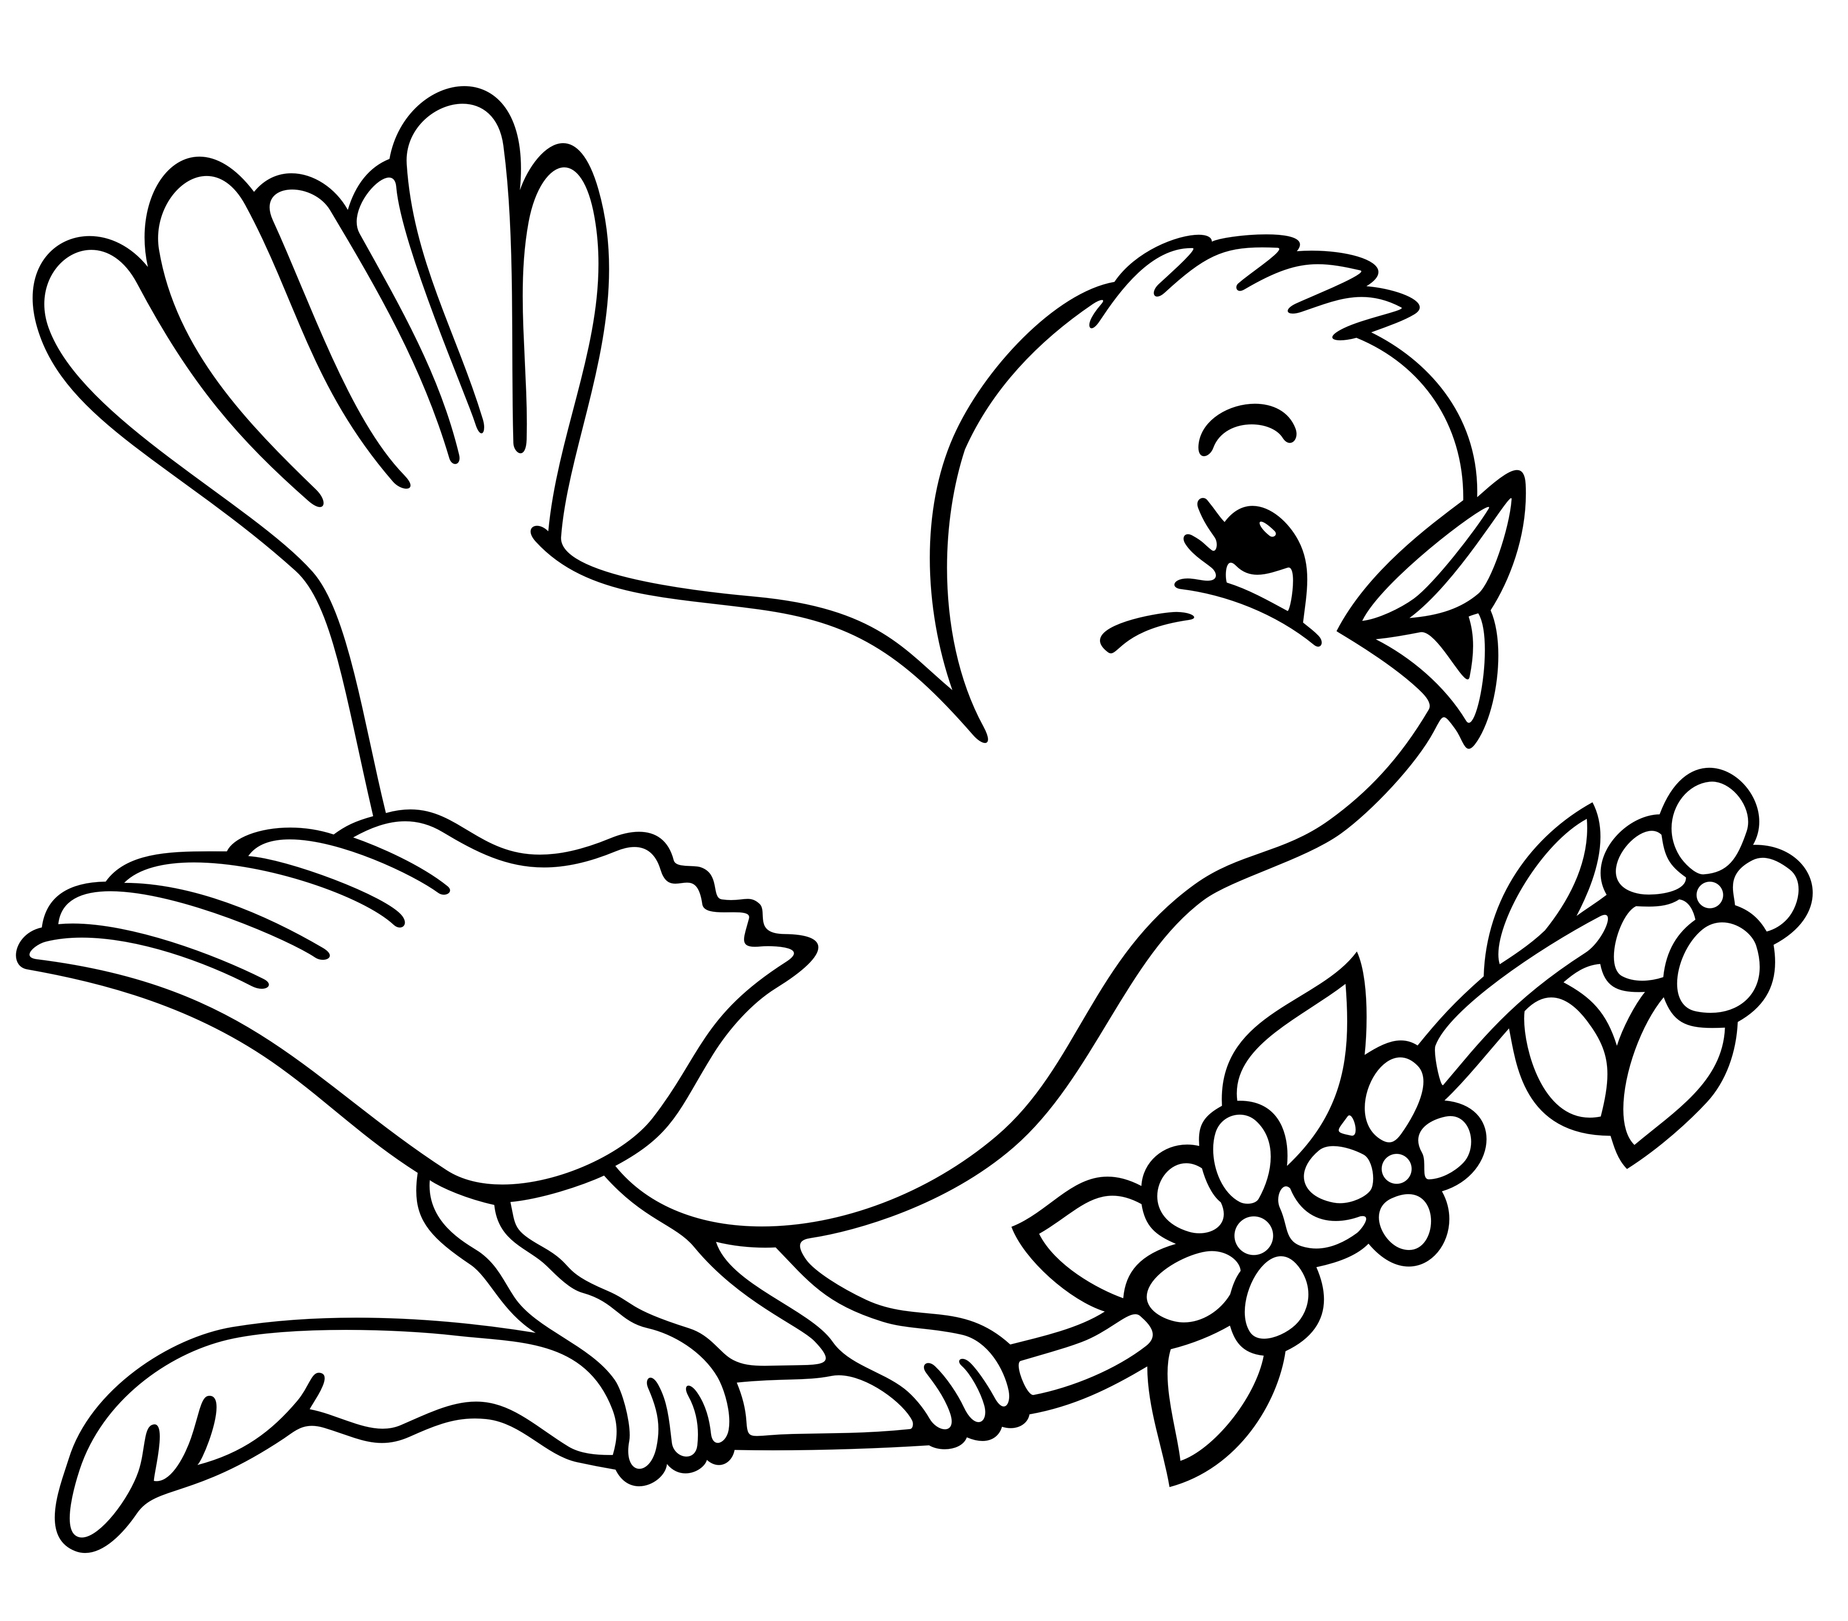 1848x1621 Great Coloring Page Of A Bird Colouring To Humorous Selected Cute